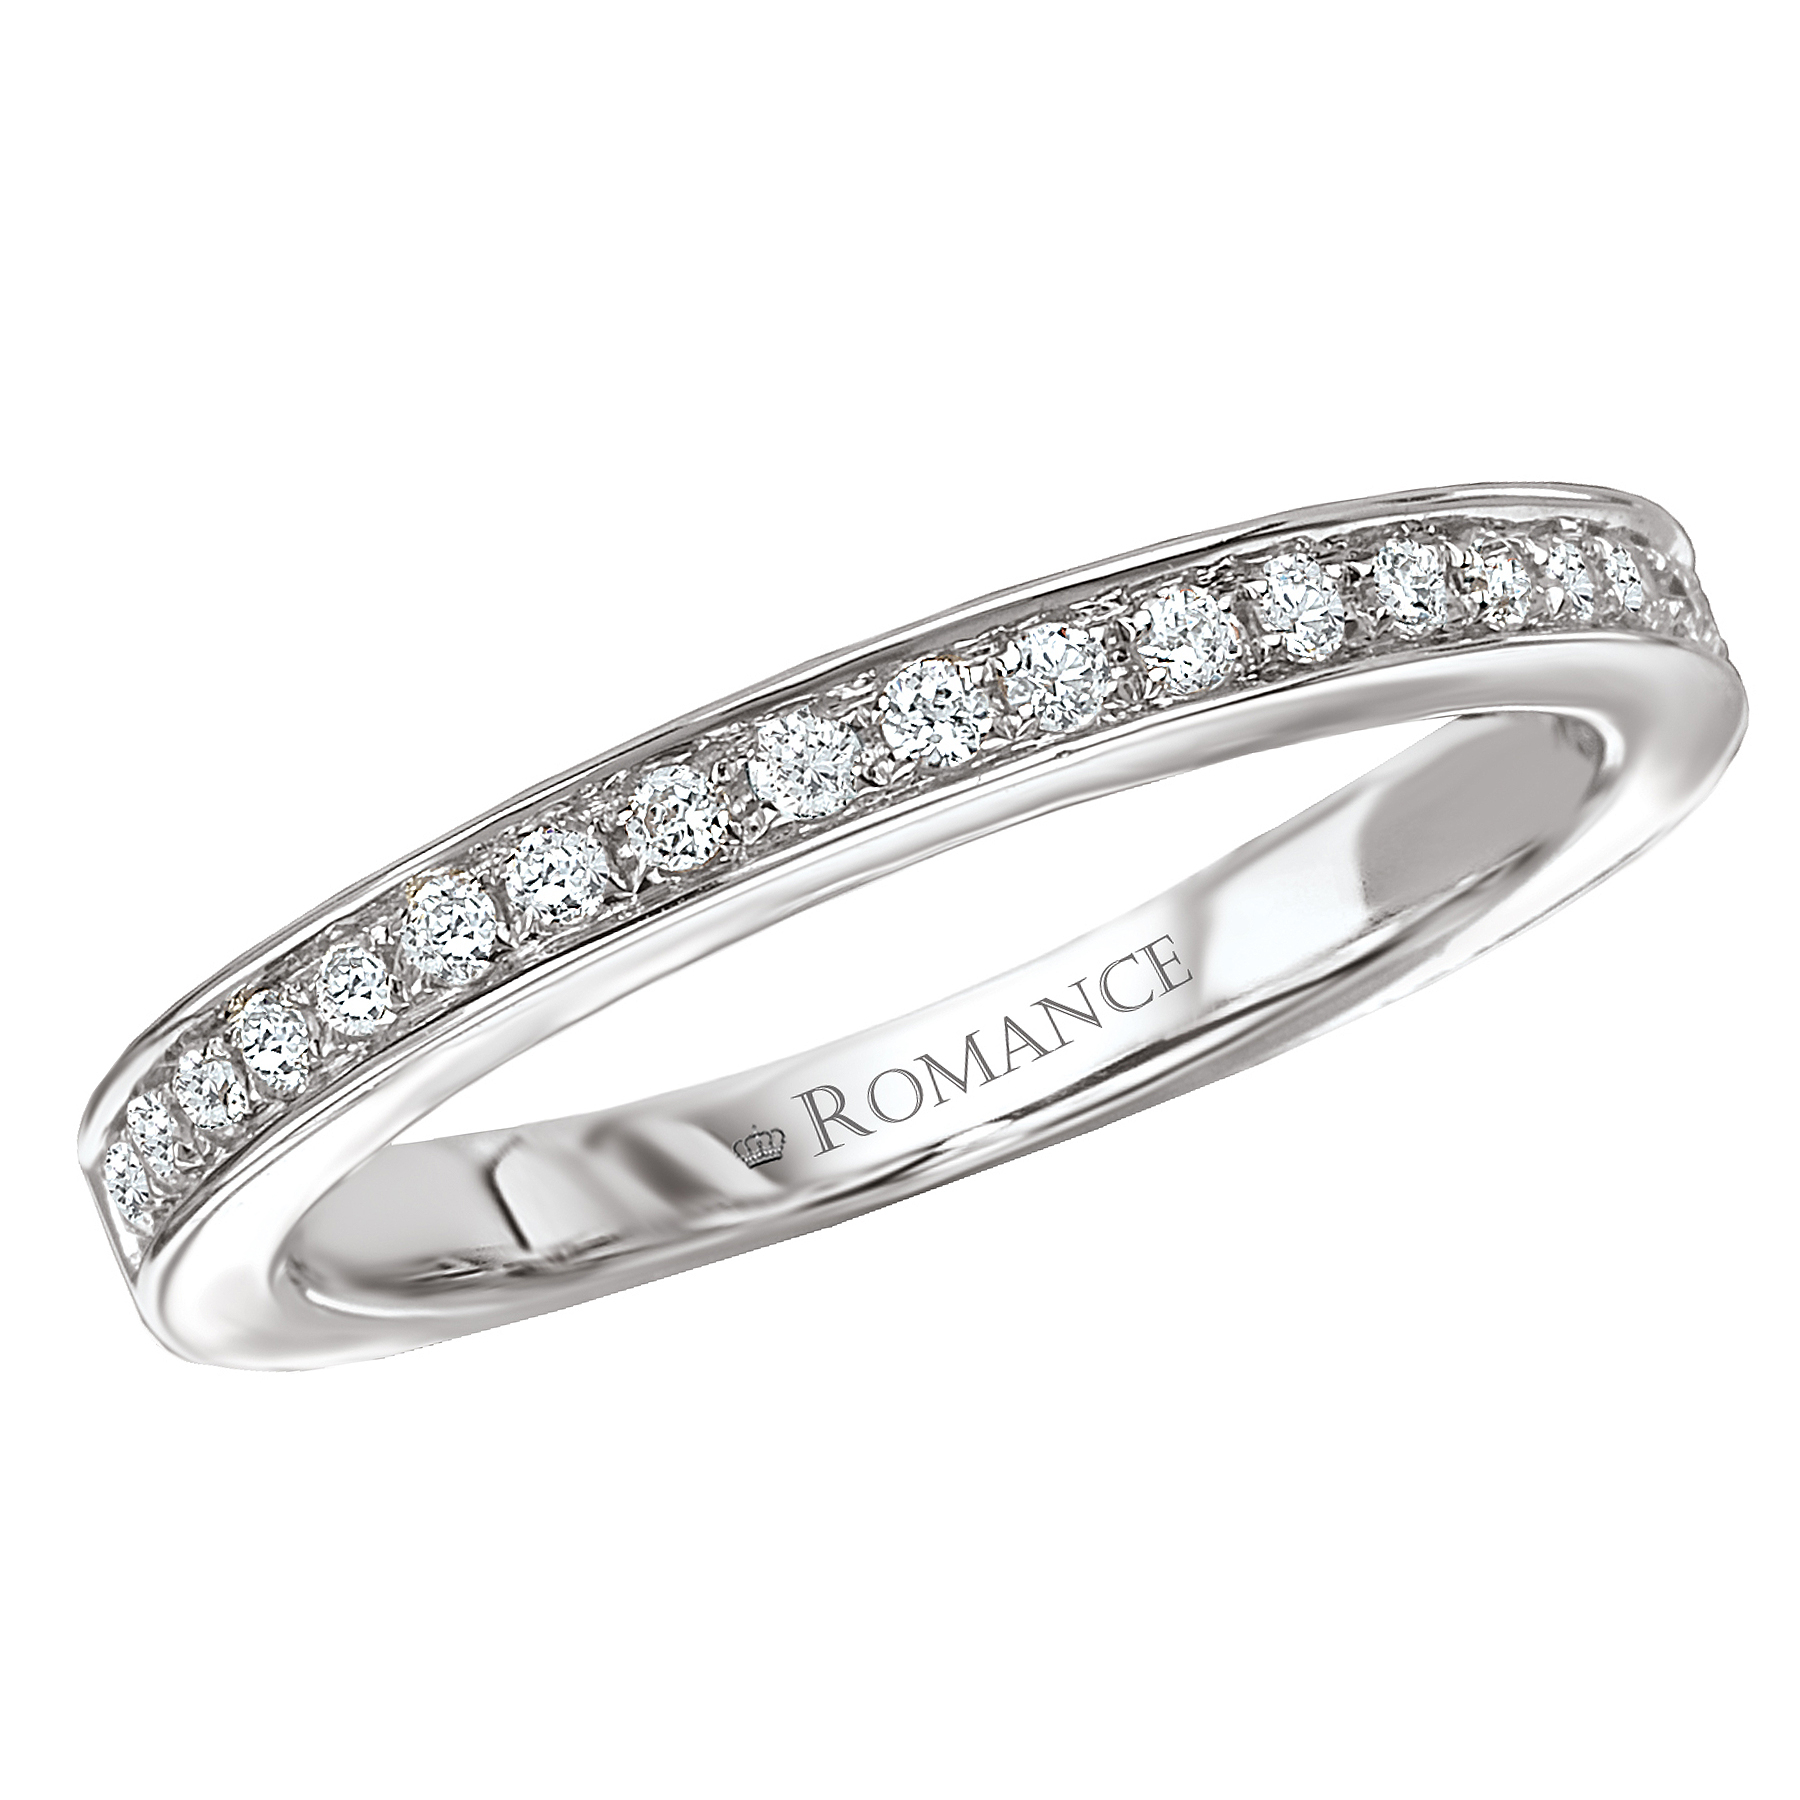 Romance Wedding Bands 117323-W product image